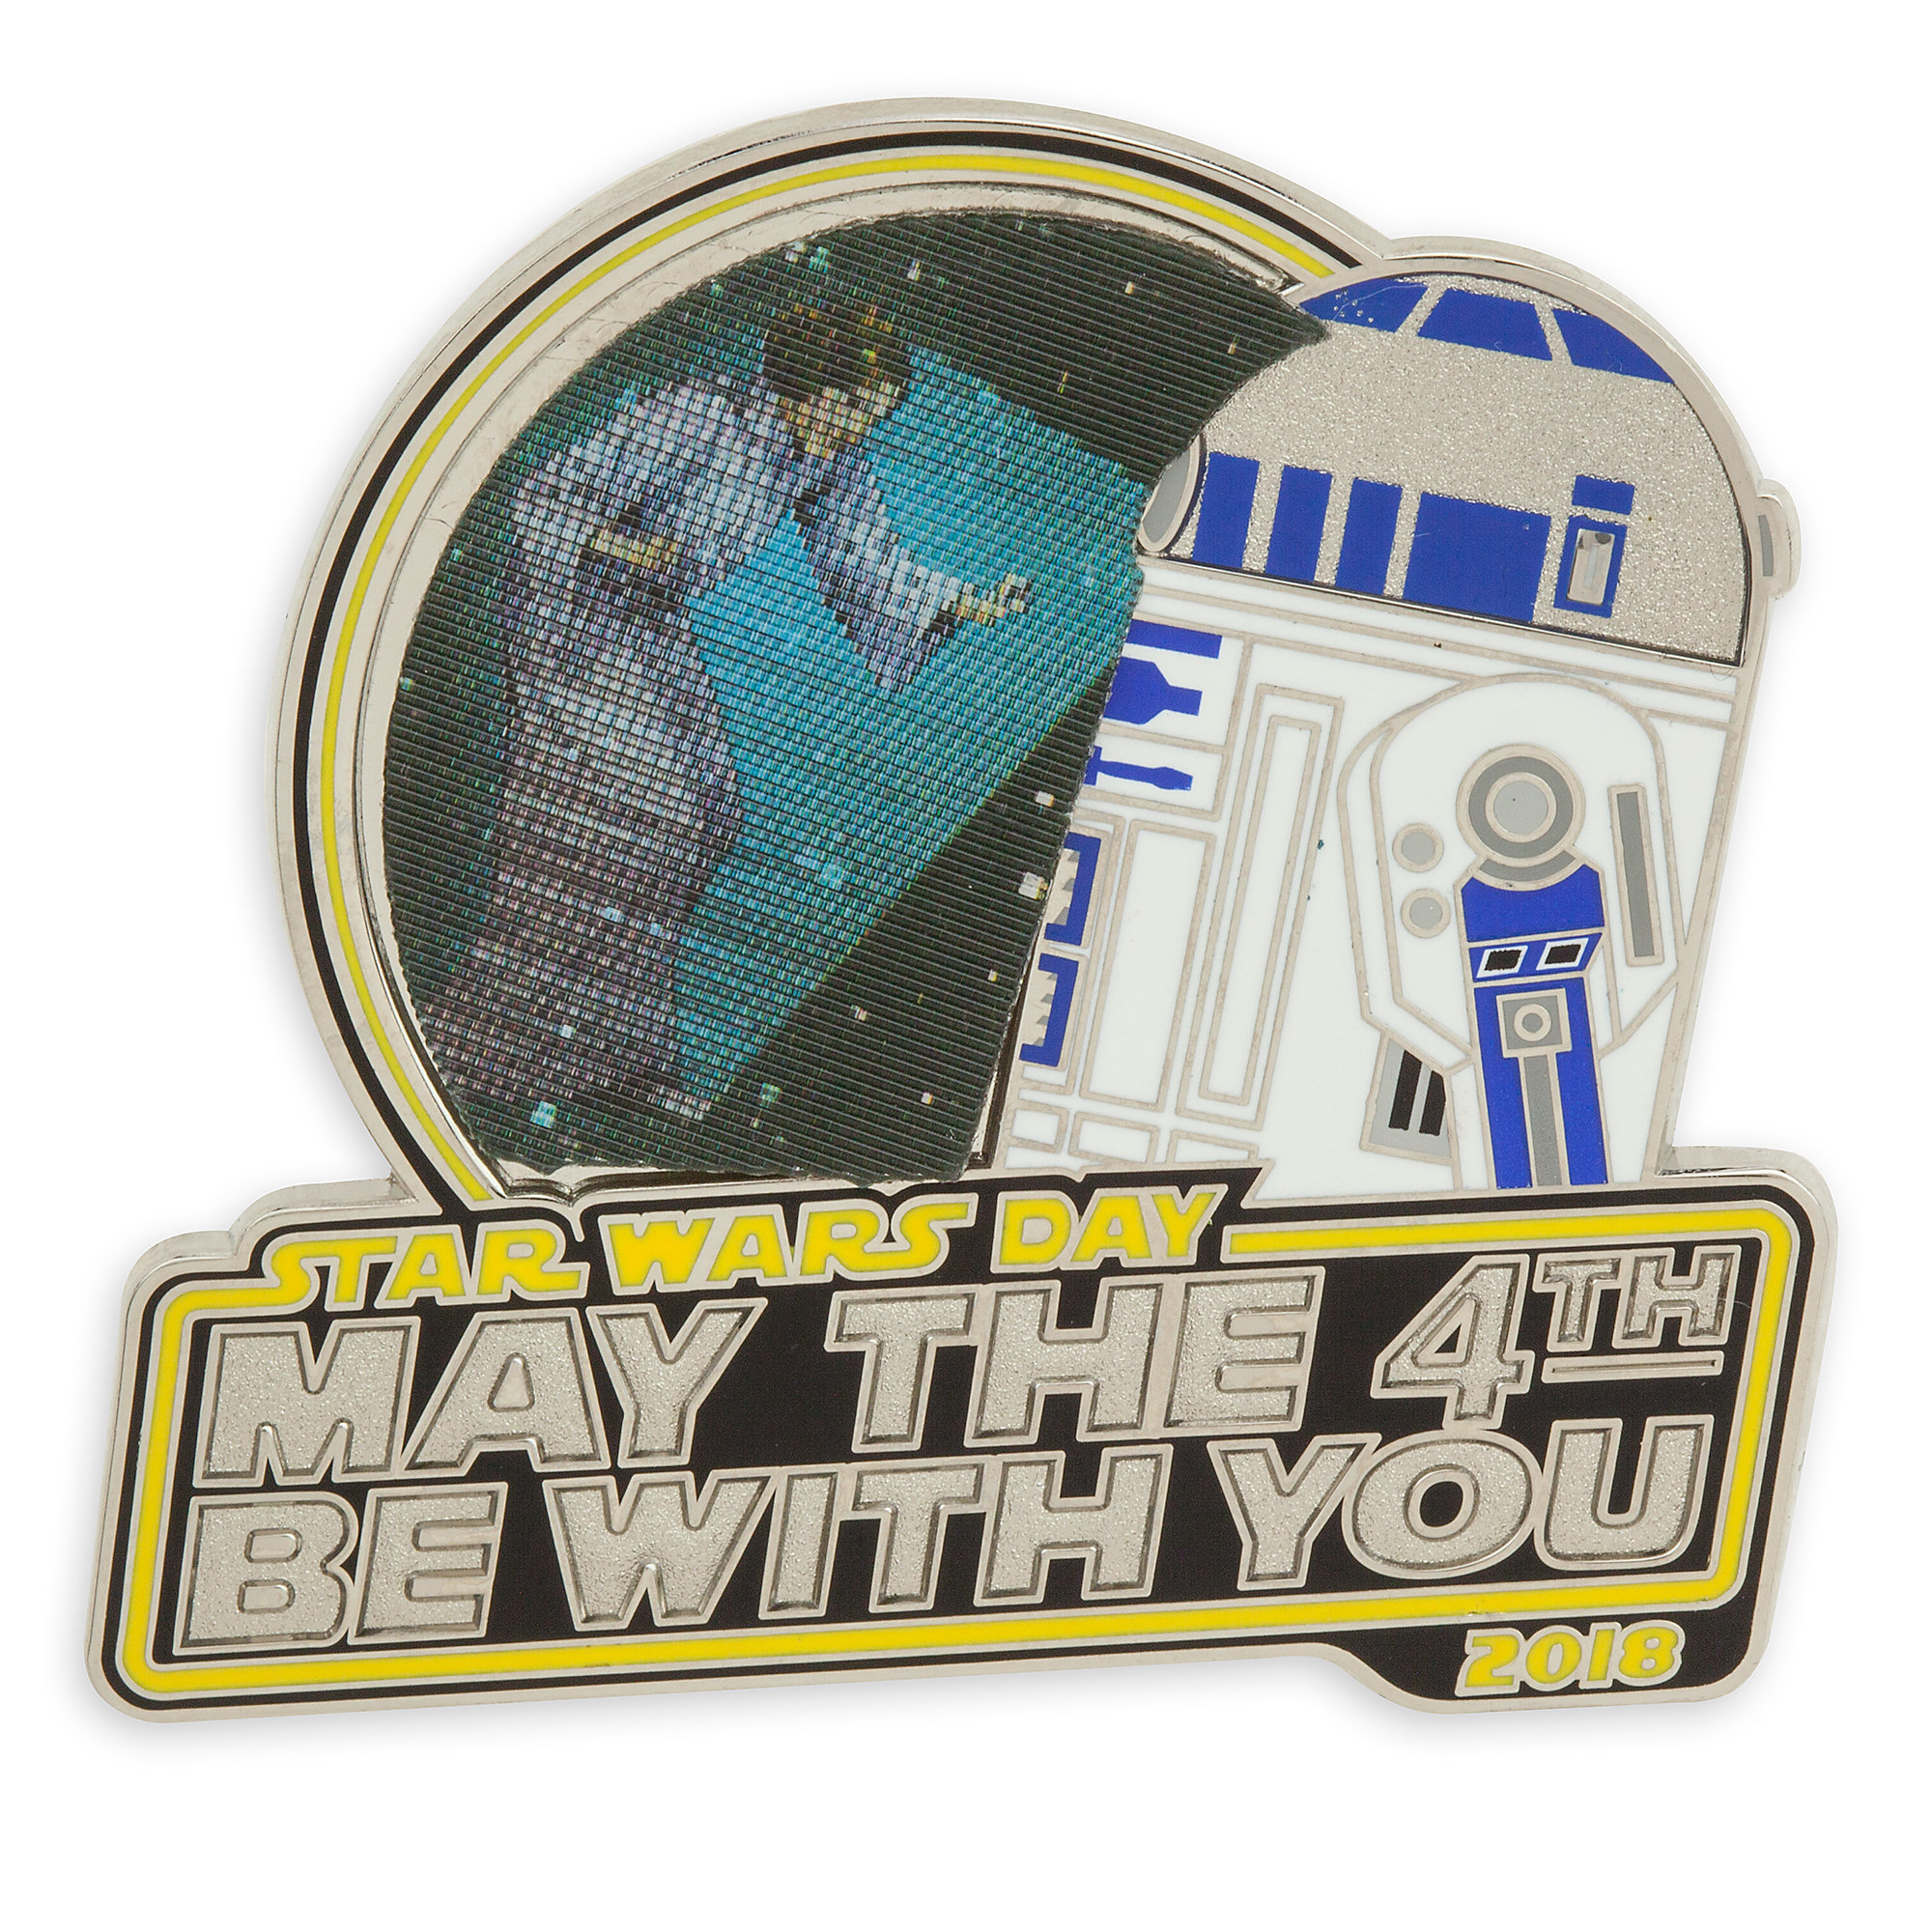 Disney Star Wars Pin - R2-D2 May the 4th Be With You Pin